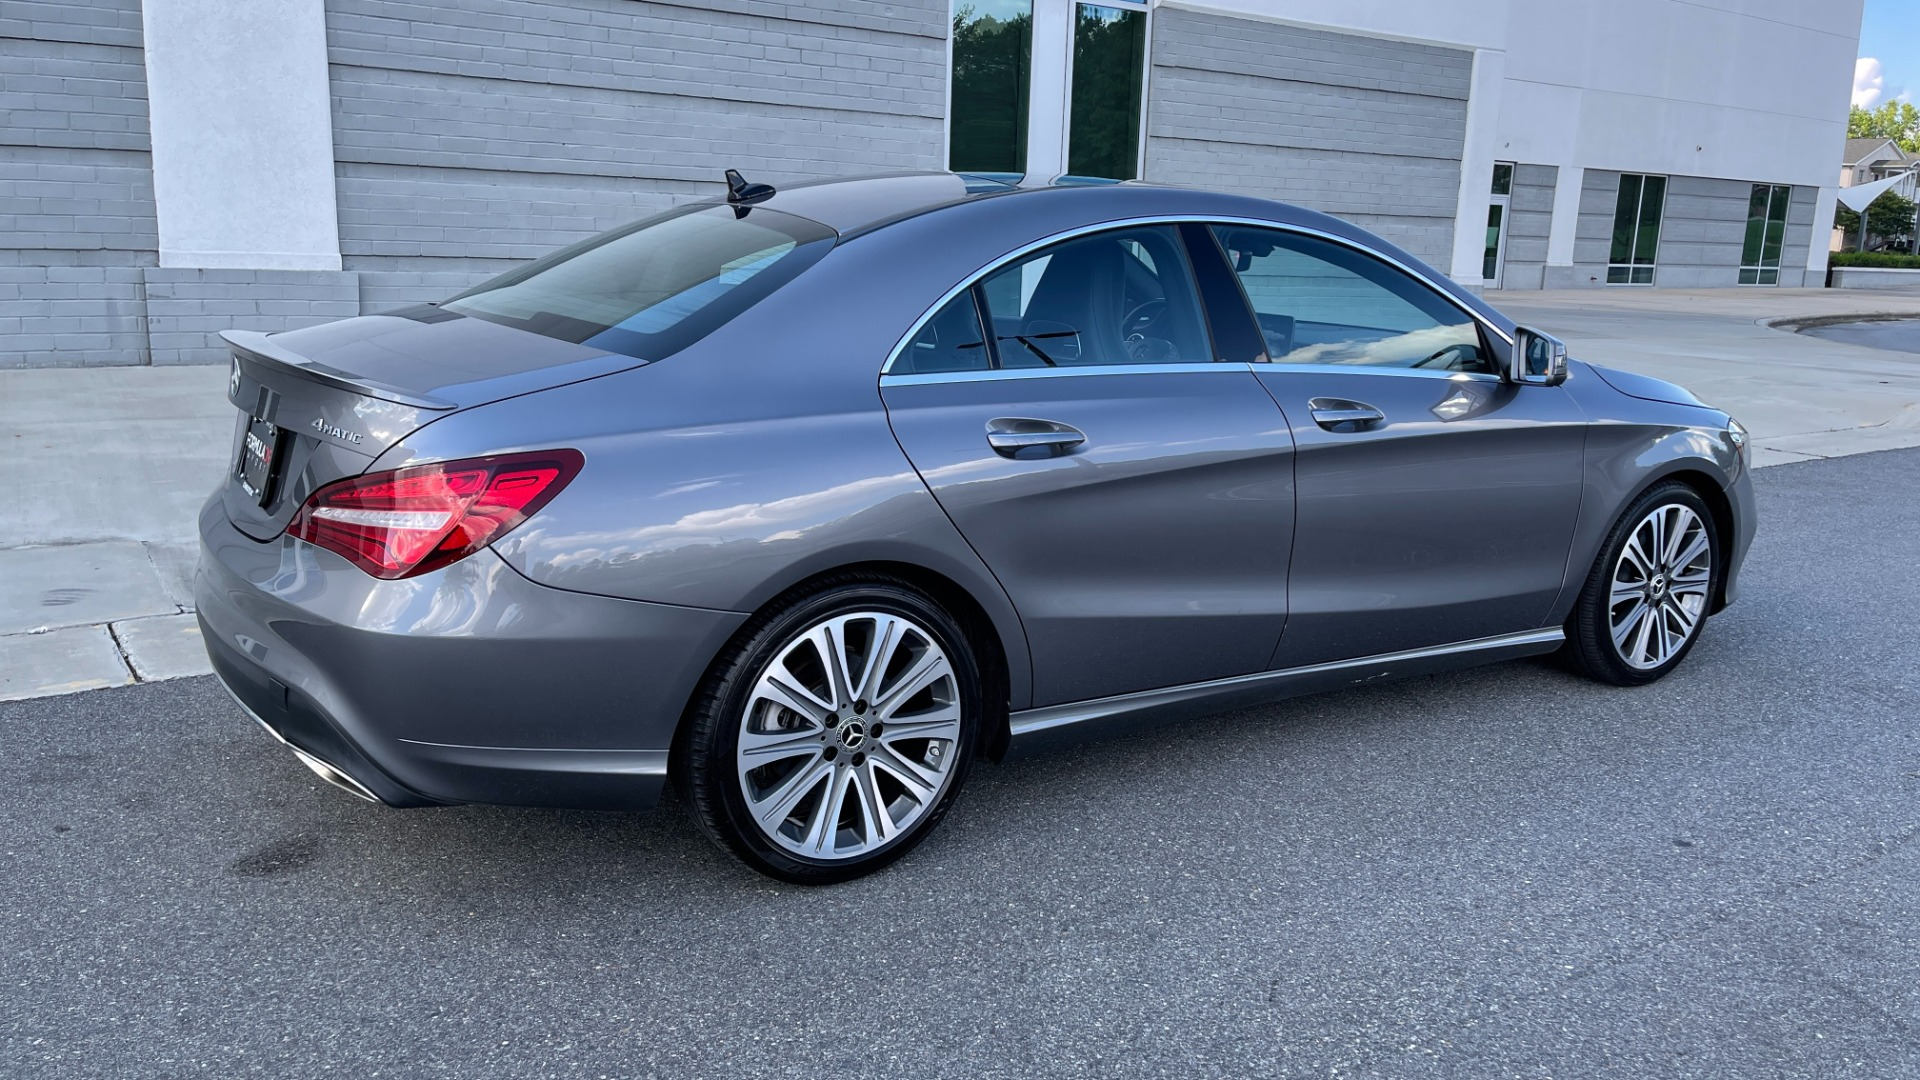 Used 2019 Mercedes-Benz CLA 250 4MATIC PREM & CONV PKG / APPLE / PANO-ROOF / H/K SND / REARVIEW for sale $29,795 at Formula Imports in Charlotte NC 28227 4